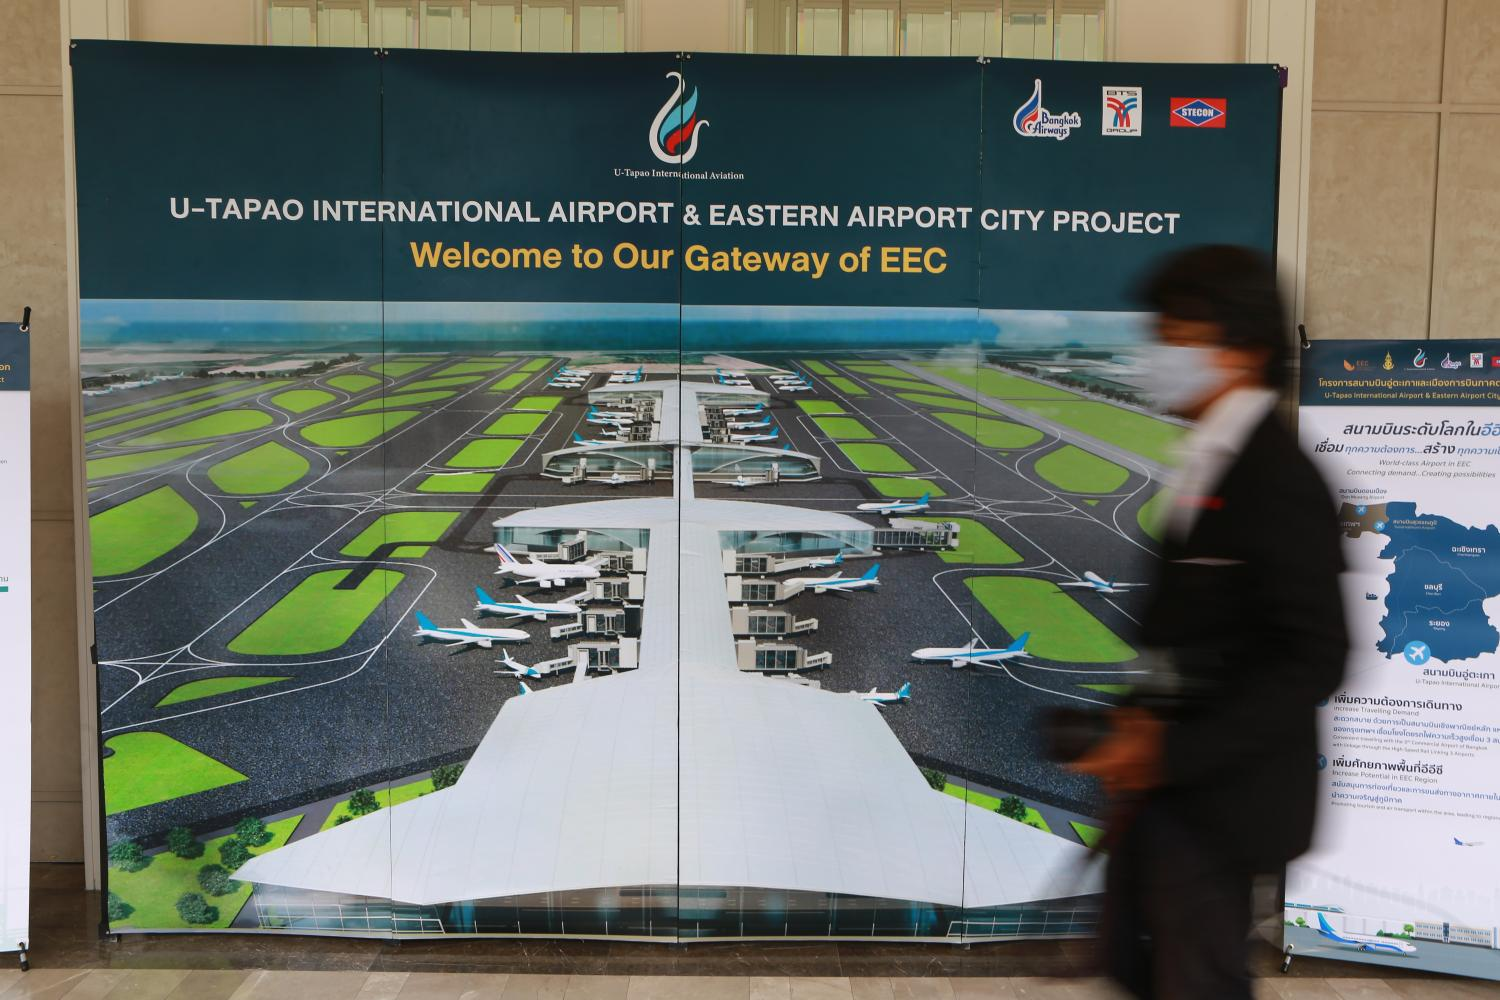 A man walks past a signboard promoting projects at U-tapao airport.(Photo by Somchai Poomlard)